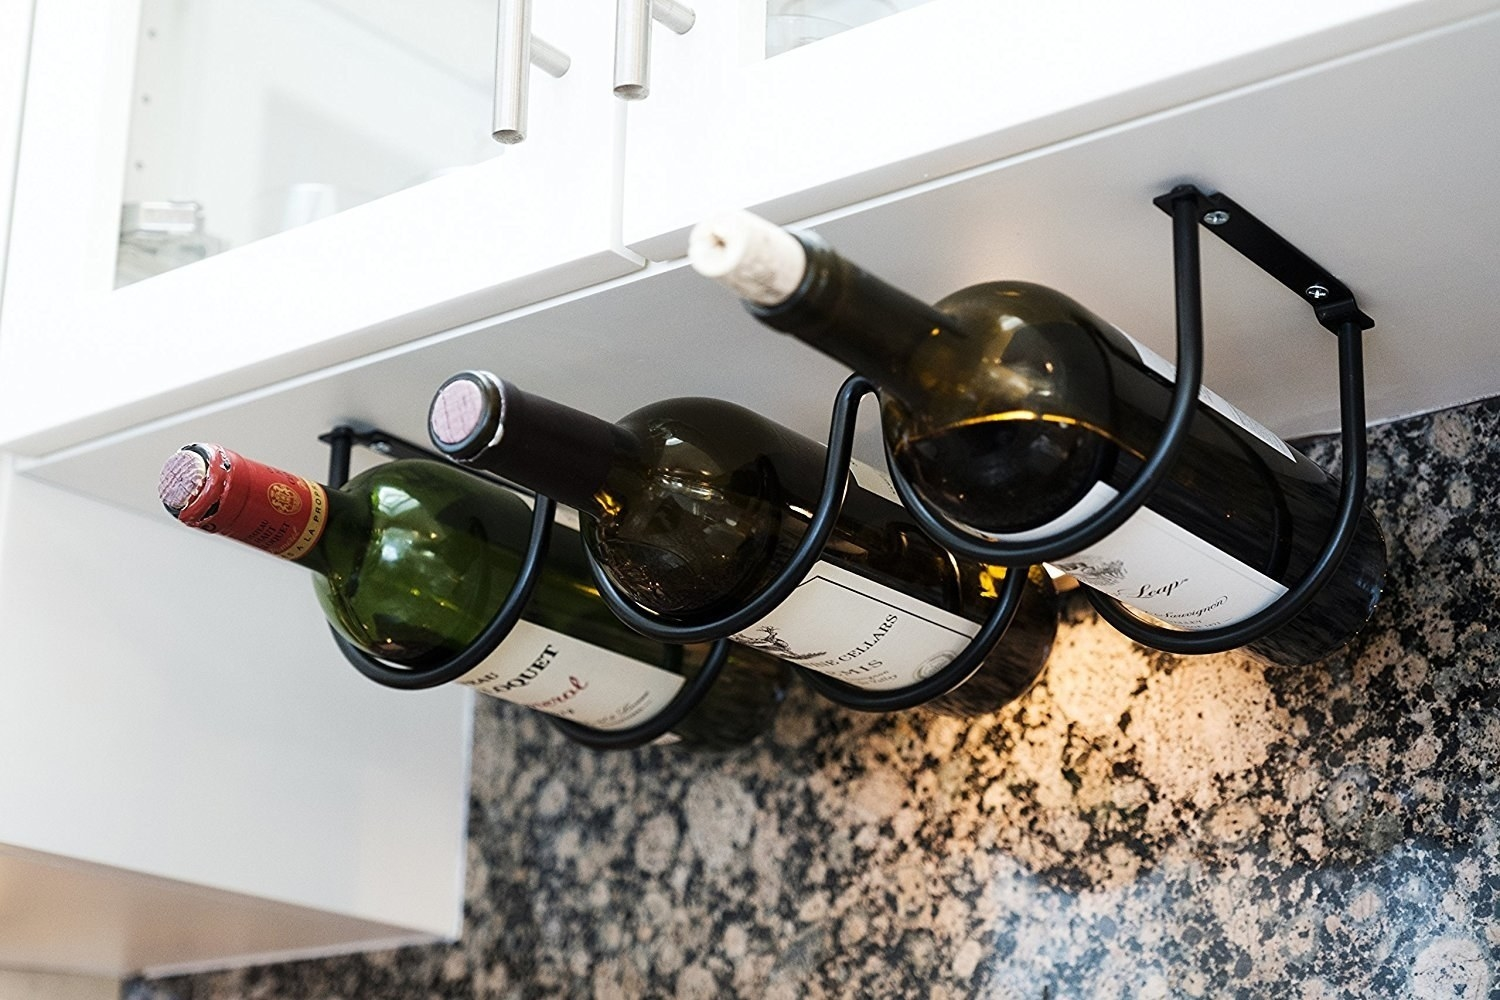 A three-bottle wine holder that's screwed in under that cabinet so wine bottles are off the counters